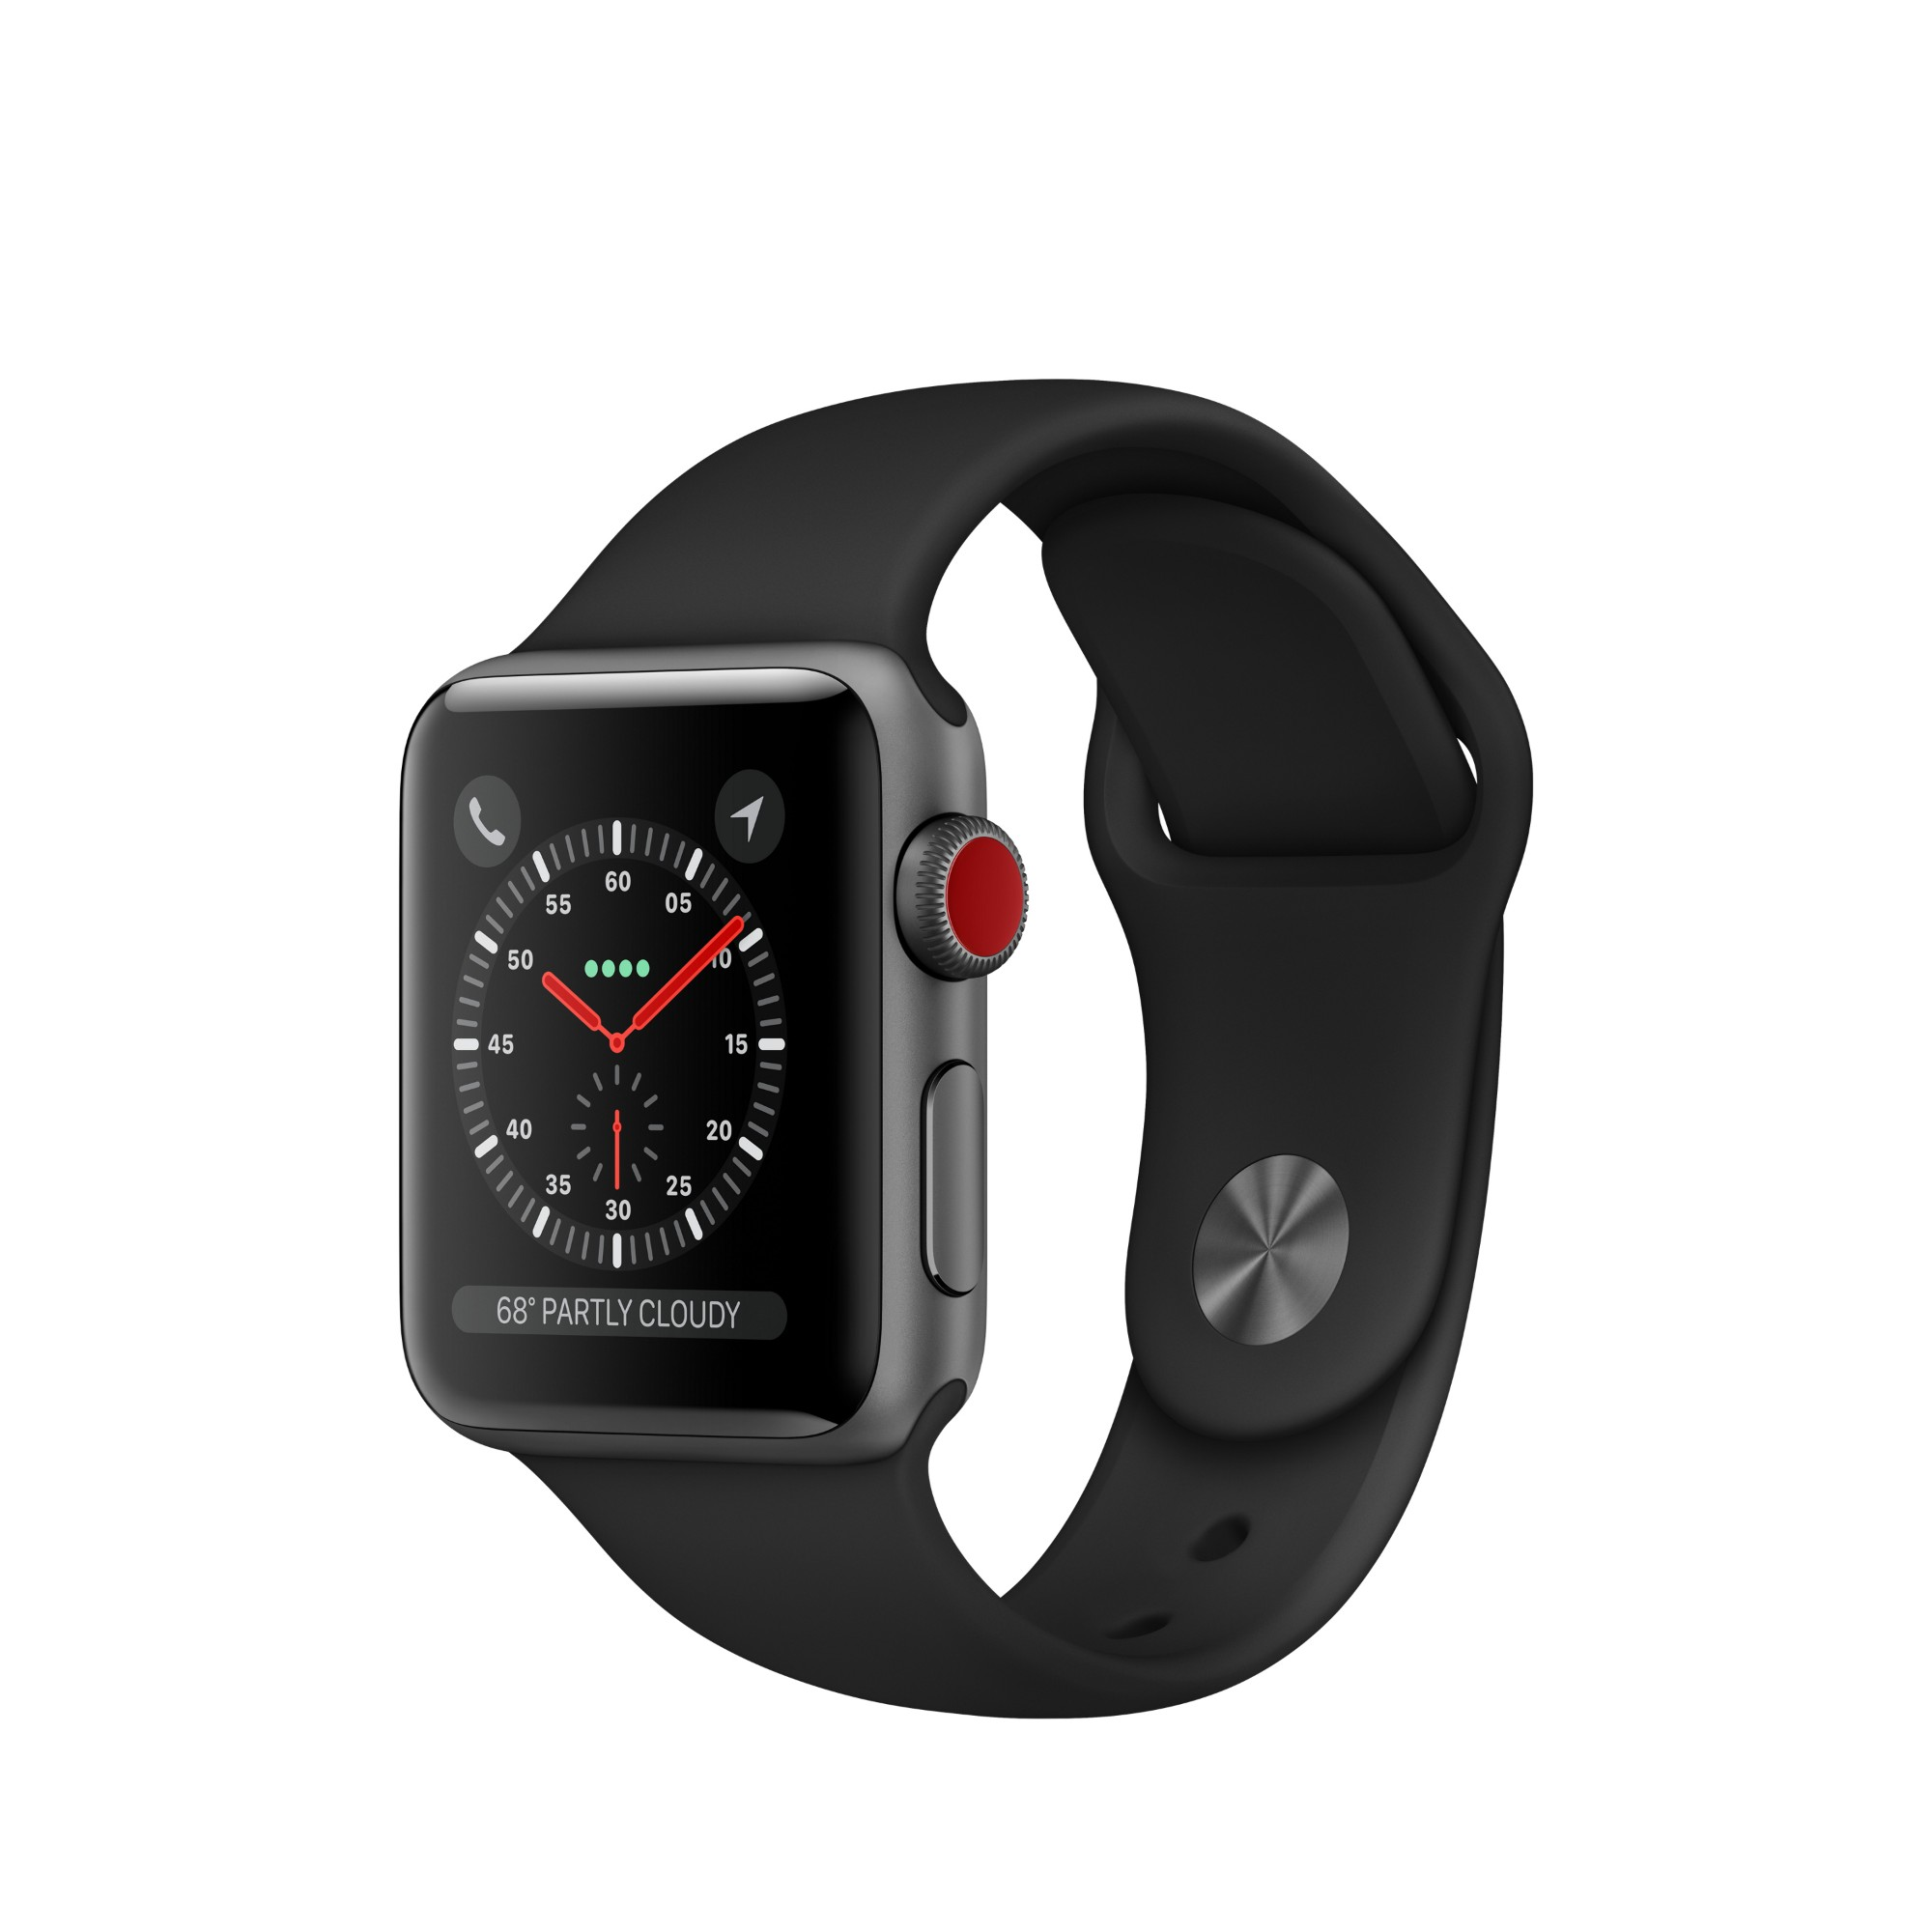 Apple Watch Series 3 OLED GPS (satellite) Cellular Silver smartwatch